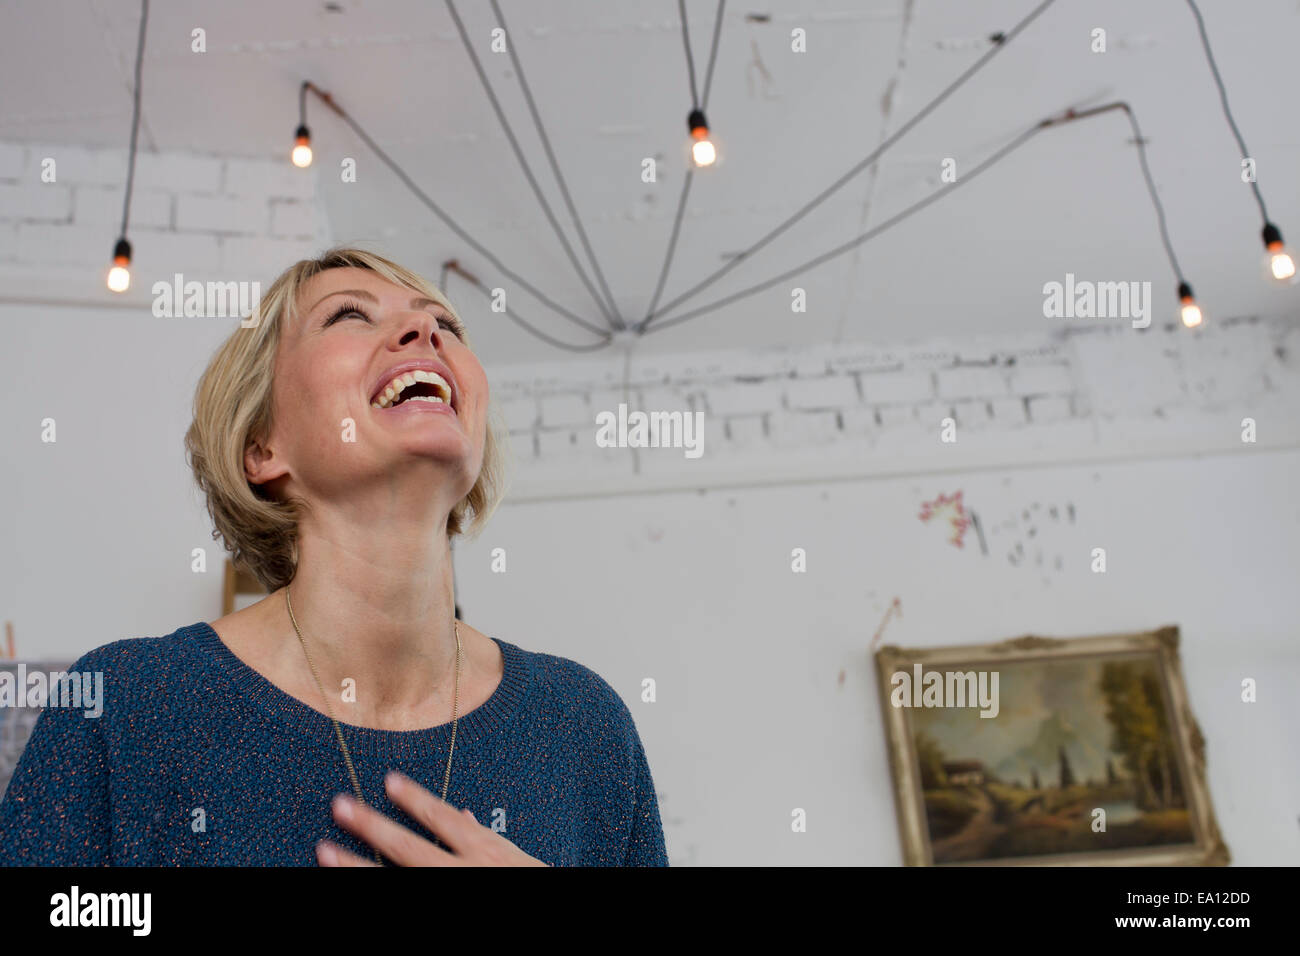 Mid adult woman laughing with head back - Stock Image